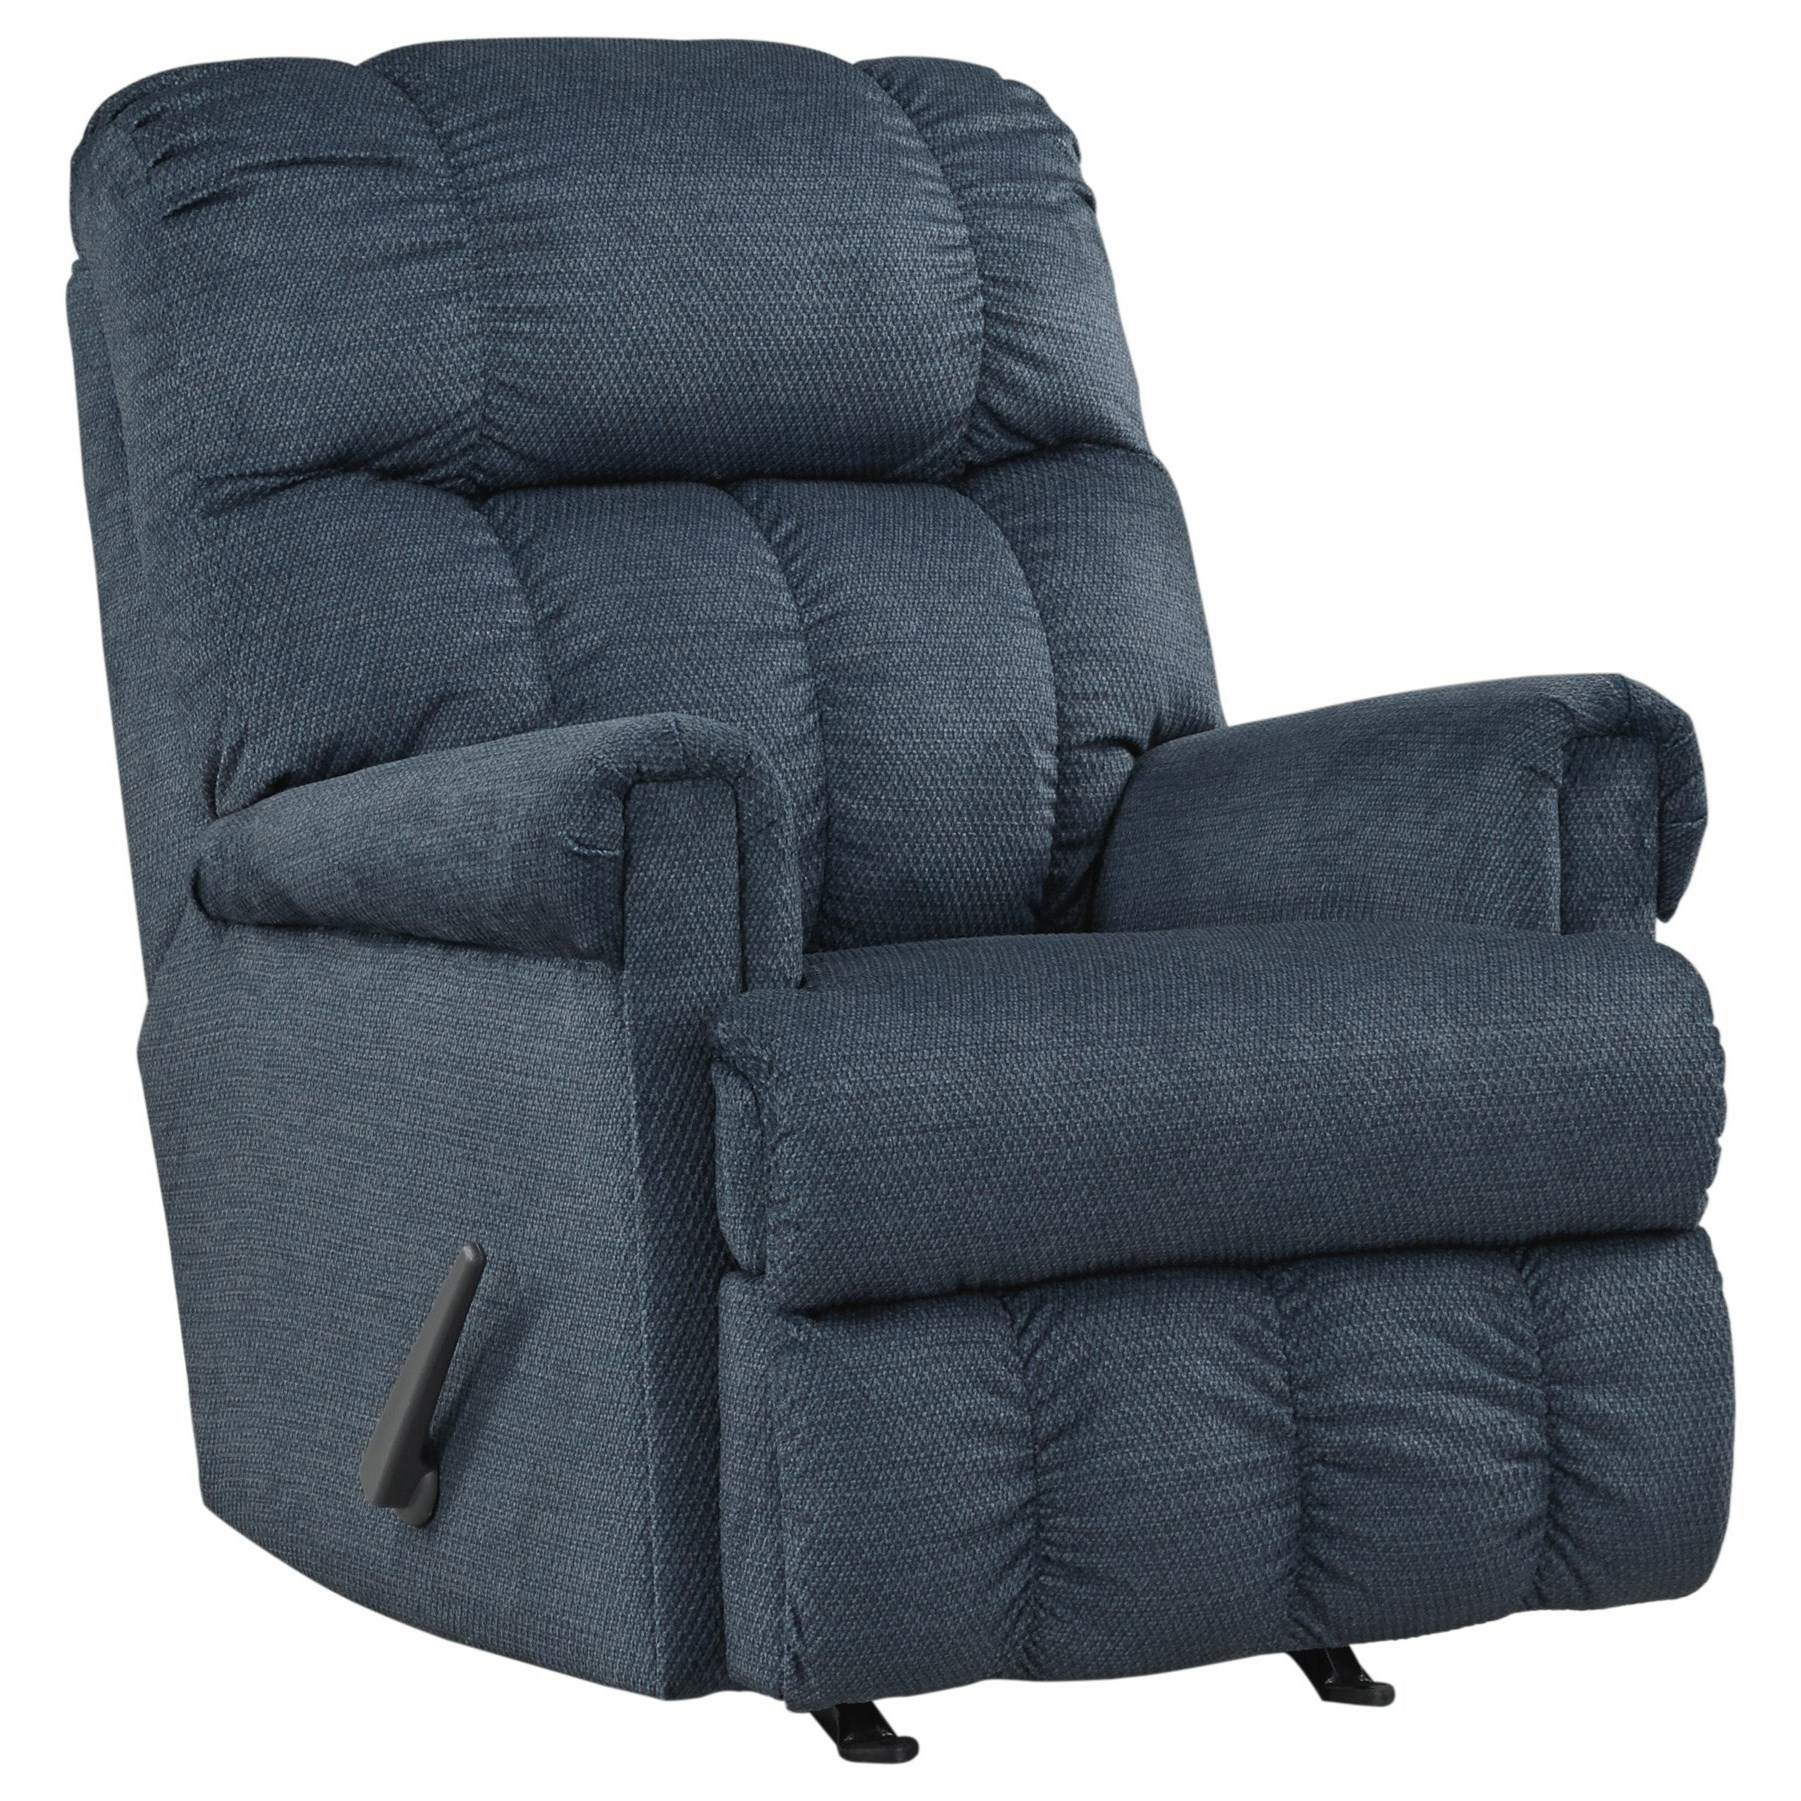 Signature Design by Ashley Craggly Rocker Recliner - Item Number: 3680525